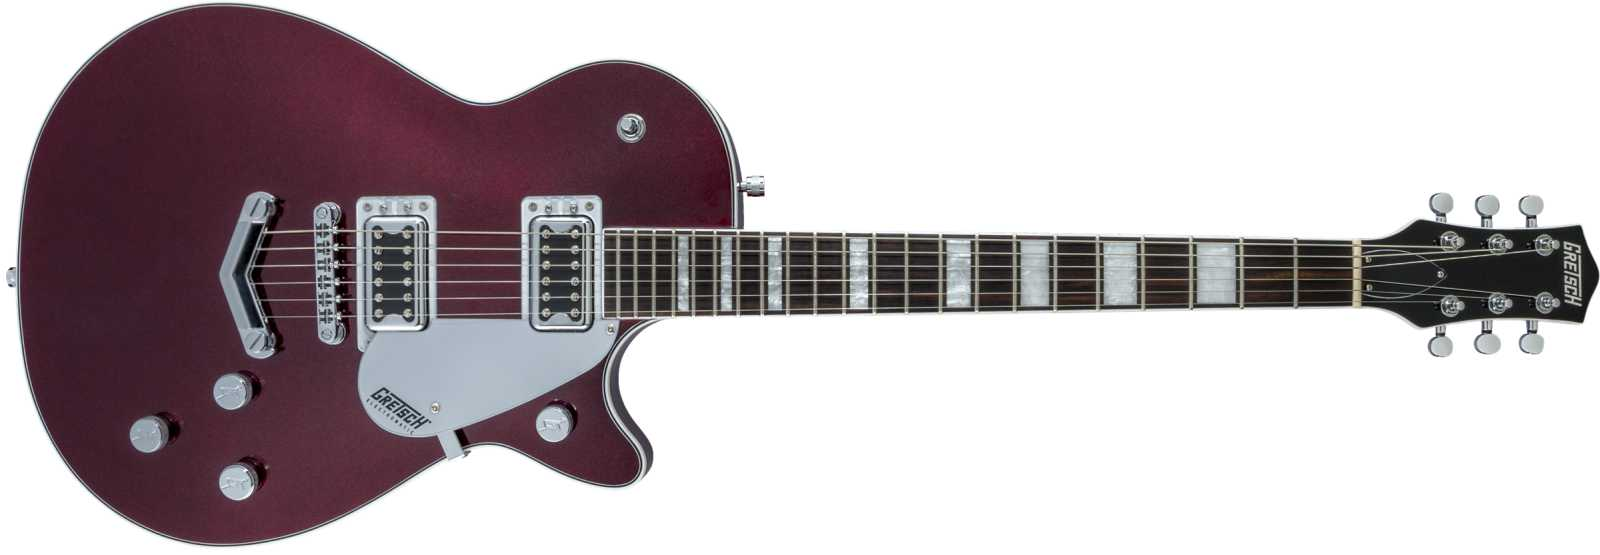 Gretsch Guitar G5220 Electromatic Jet BT DCM